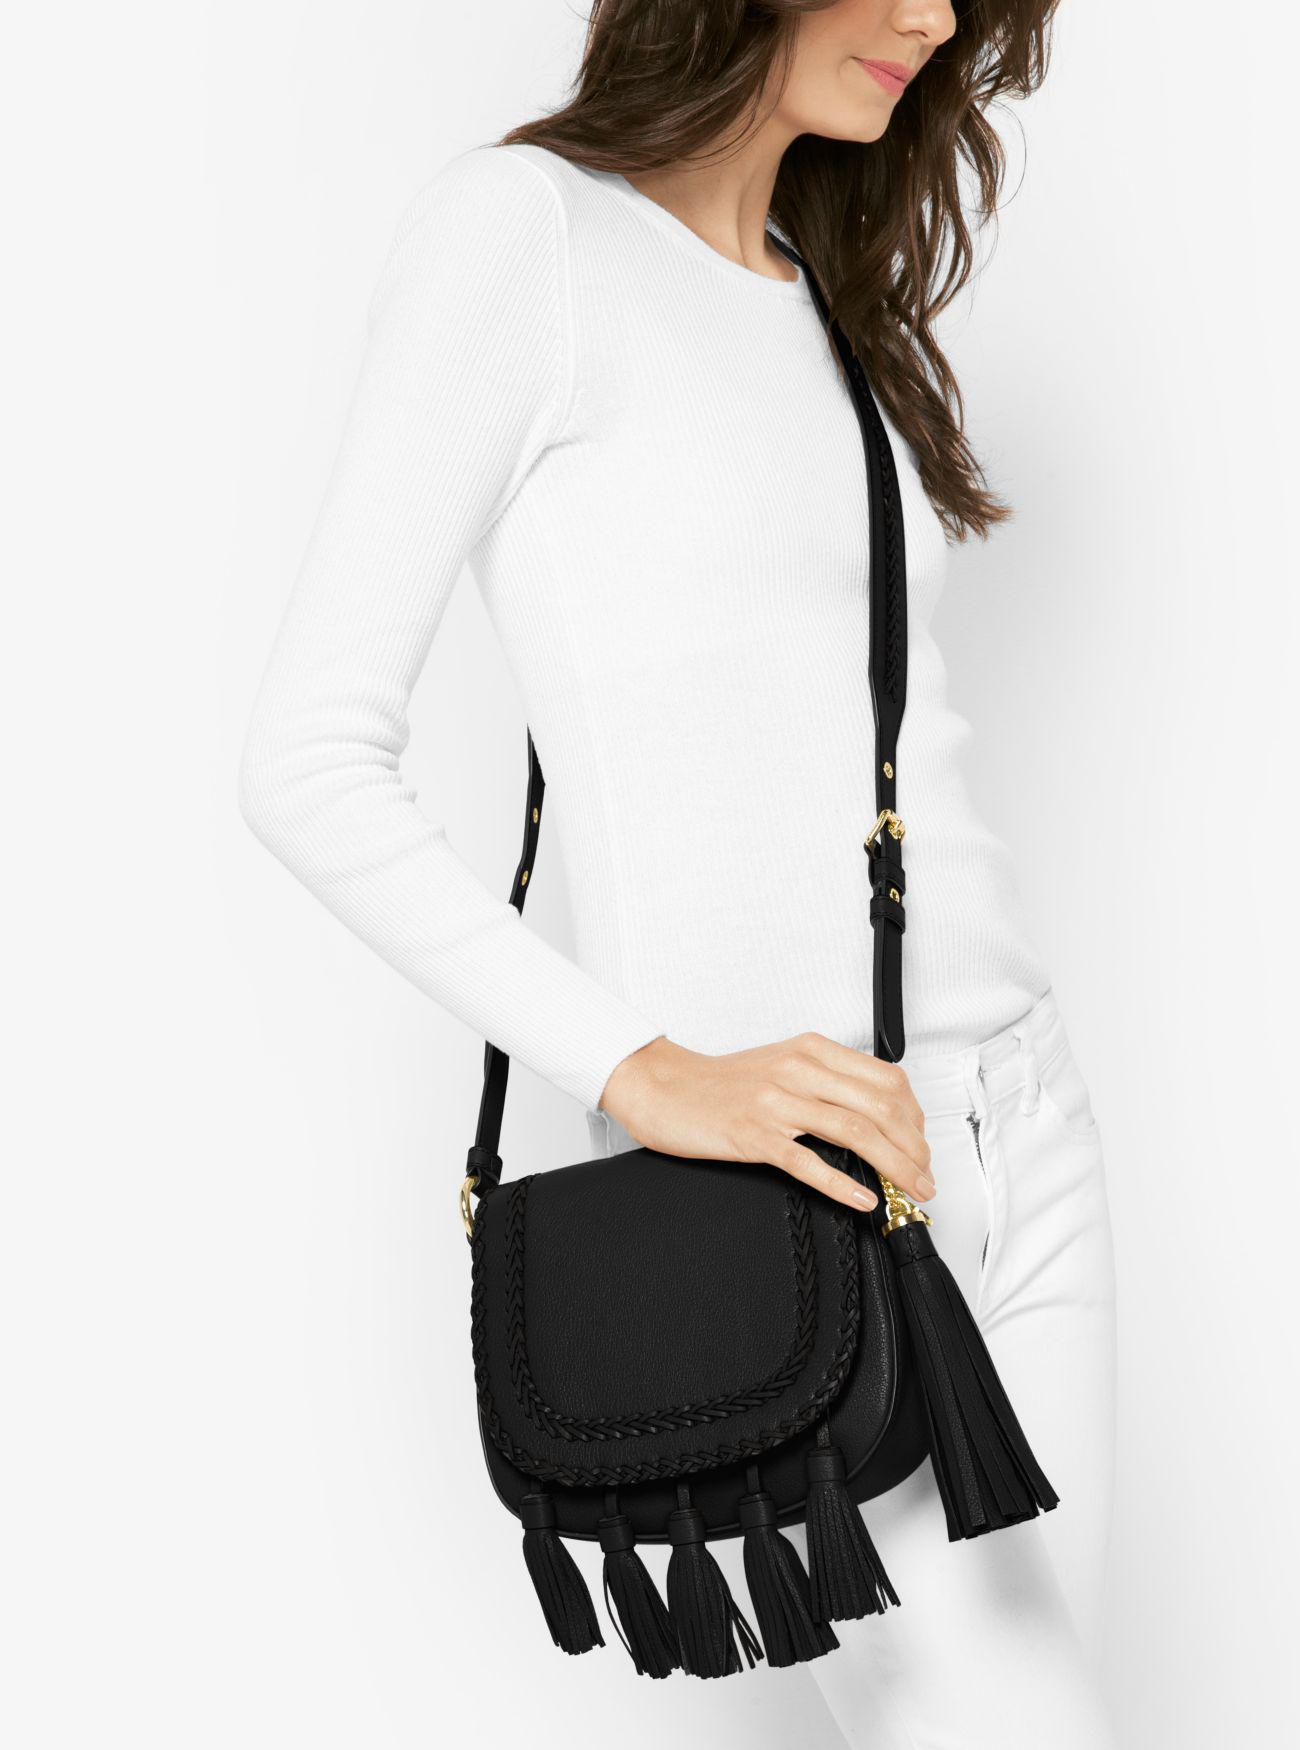 32108ab084c3f Lyst - Michael Kors Moroccan Leather Messenger in Black